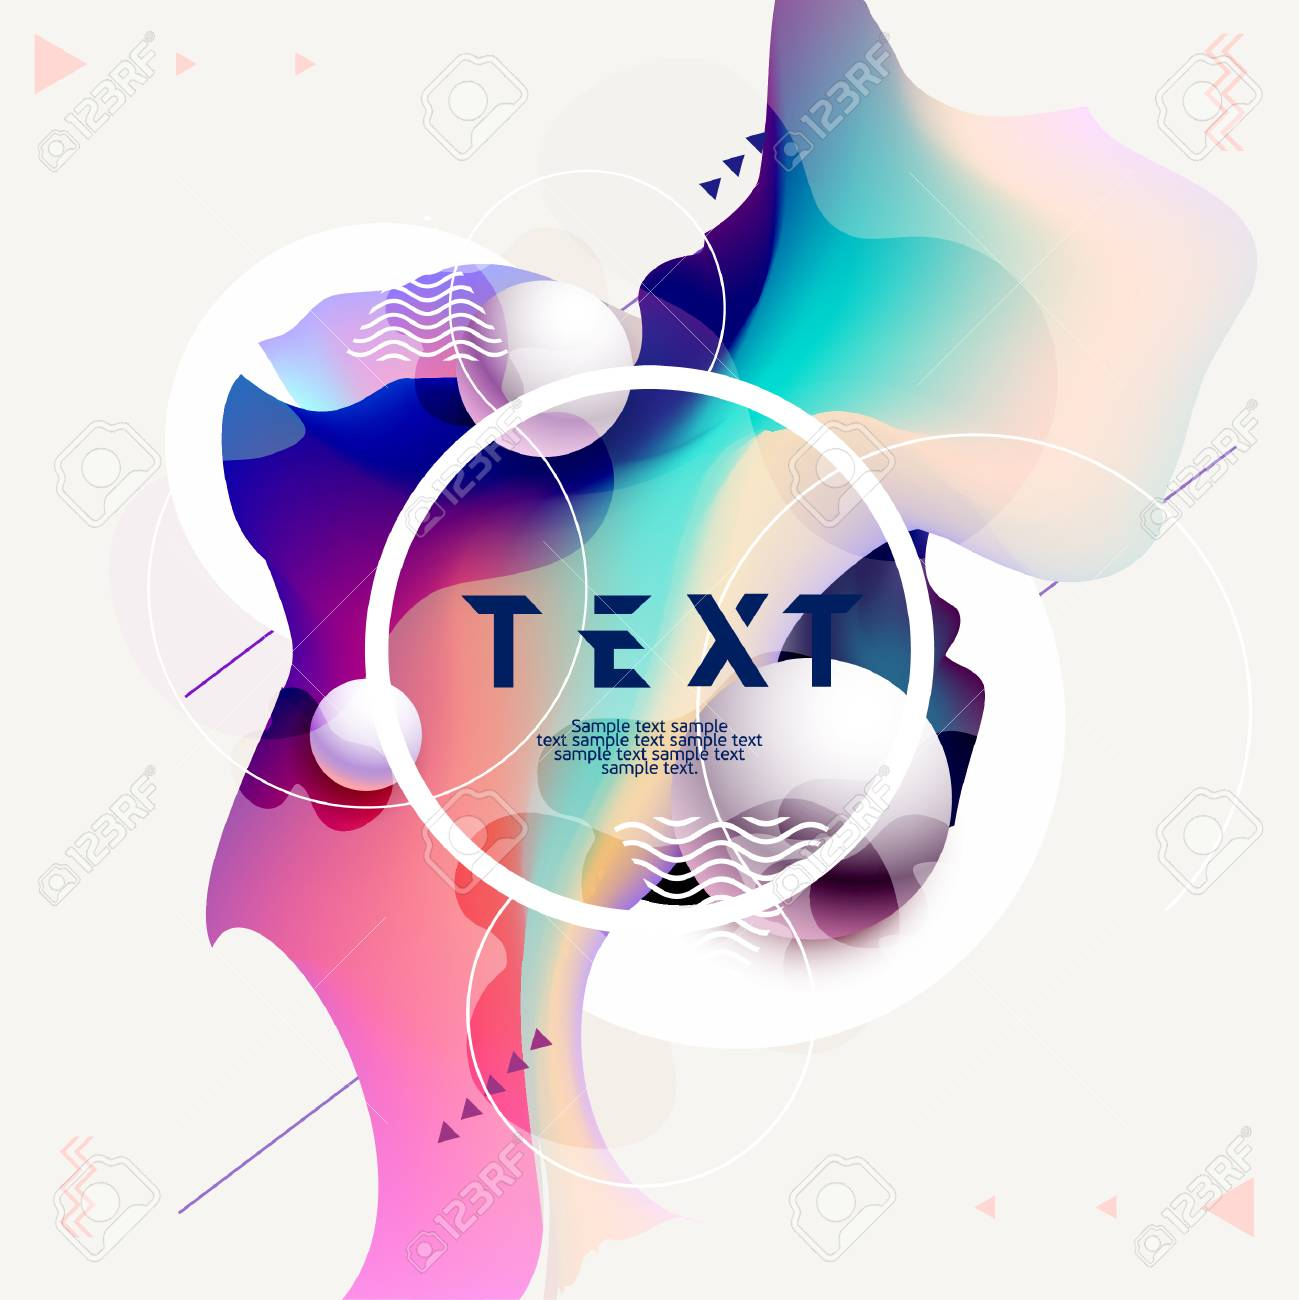 Fluid Poster Design Abstract Color Template